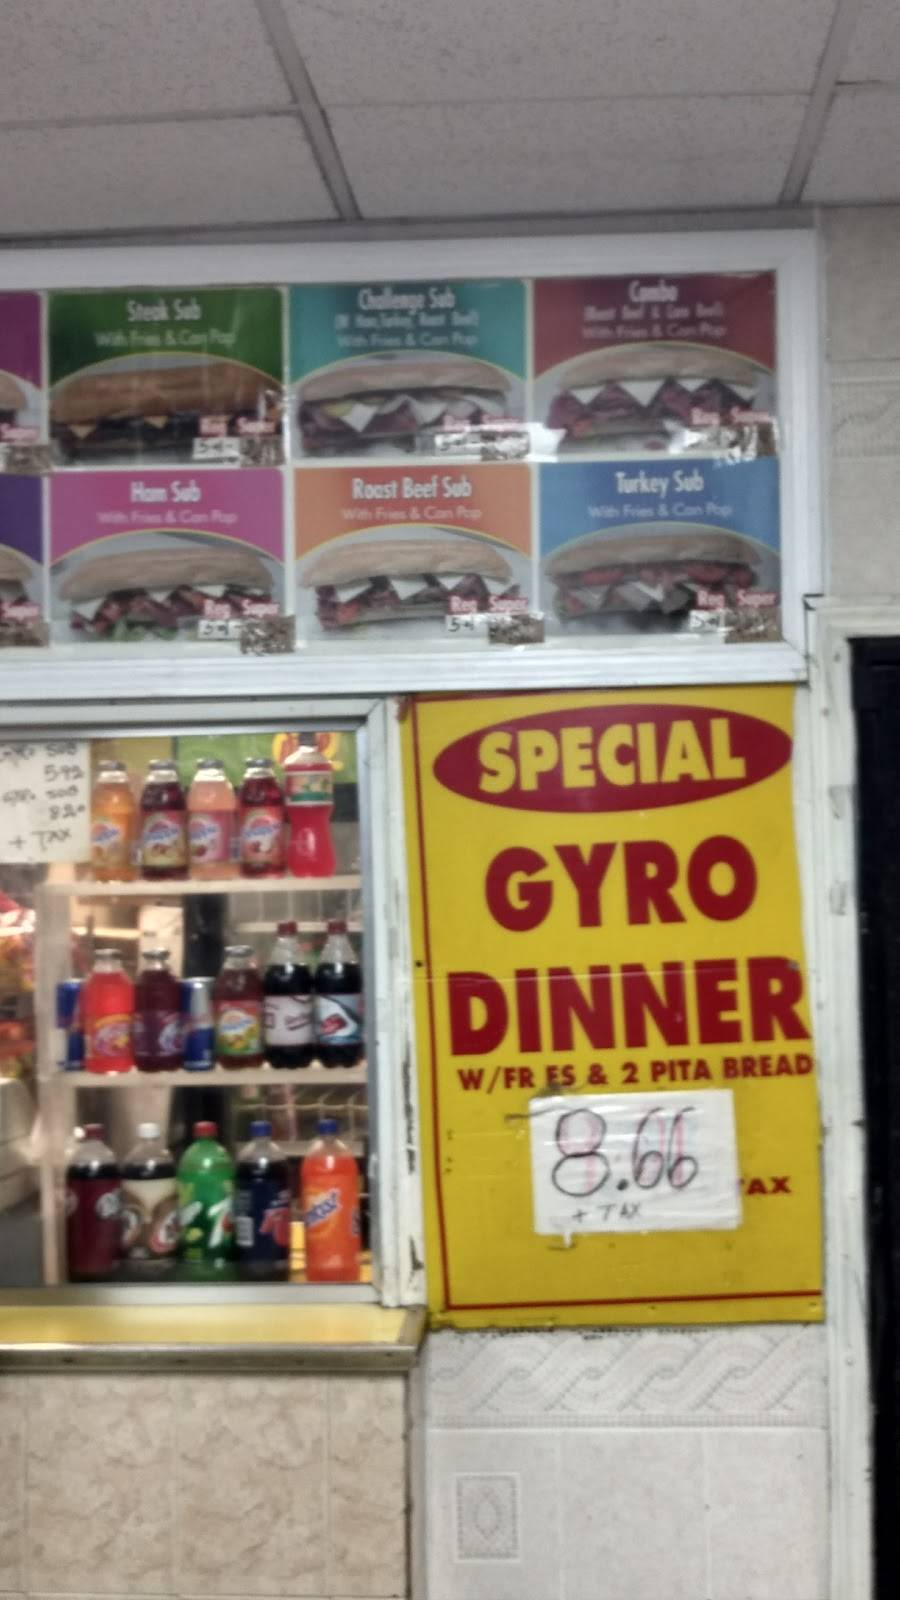 Union Submarine Shop   meal takeaway   110 E 51st St, Chicago, IL 60615, USA   7733732040 OR +1 773-373-2040